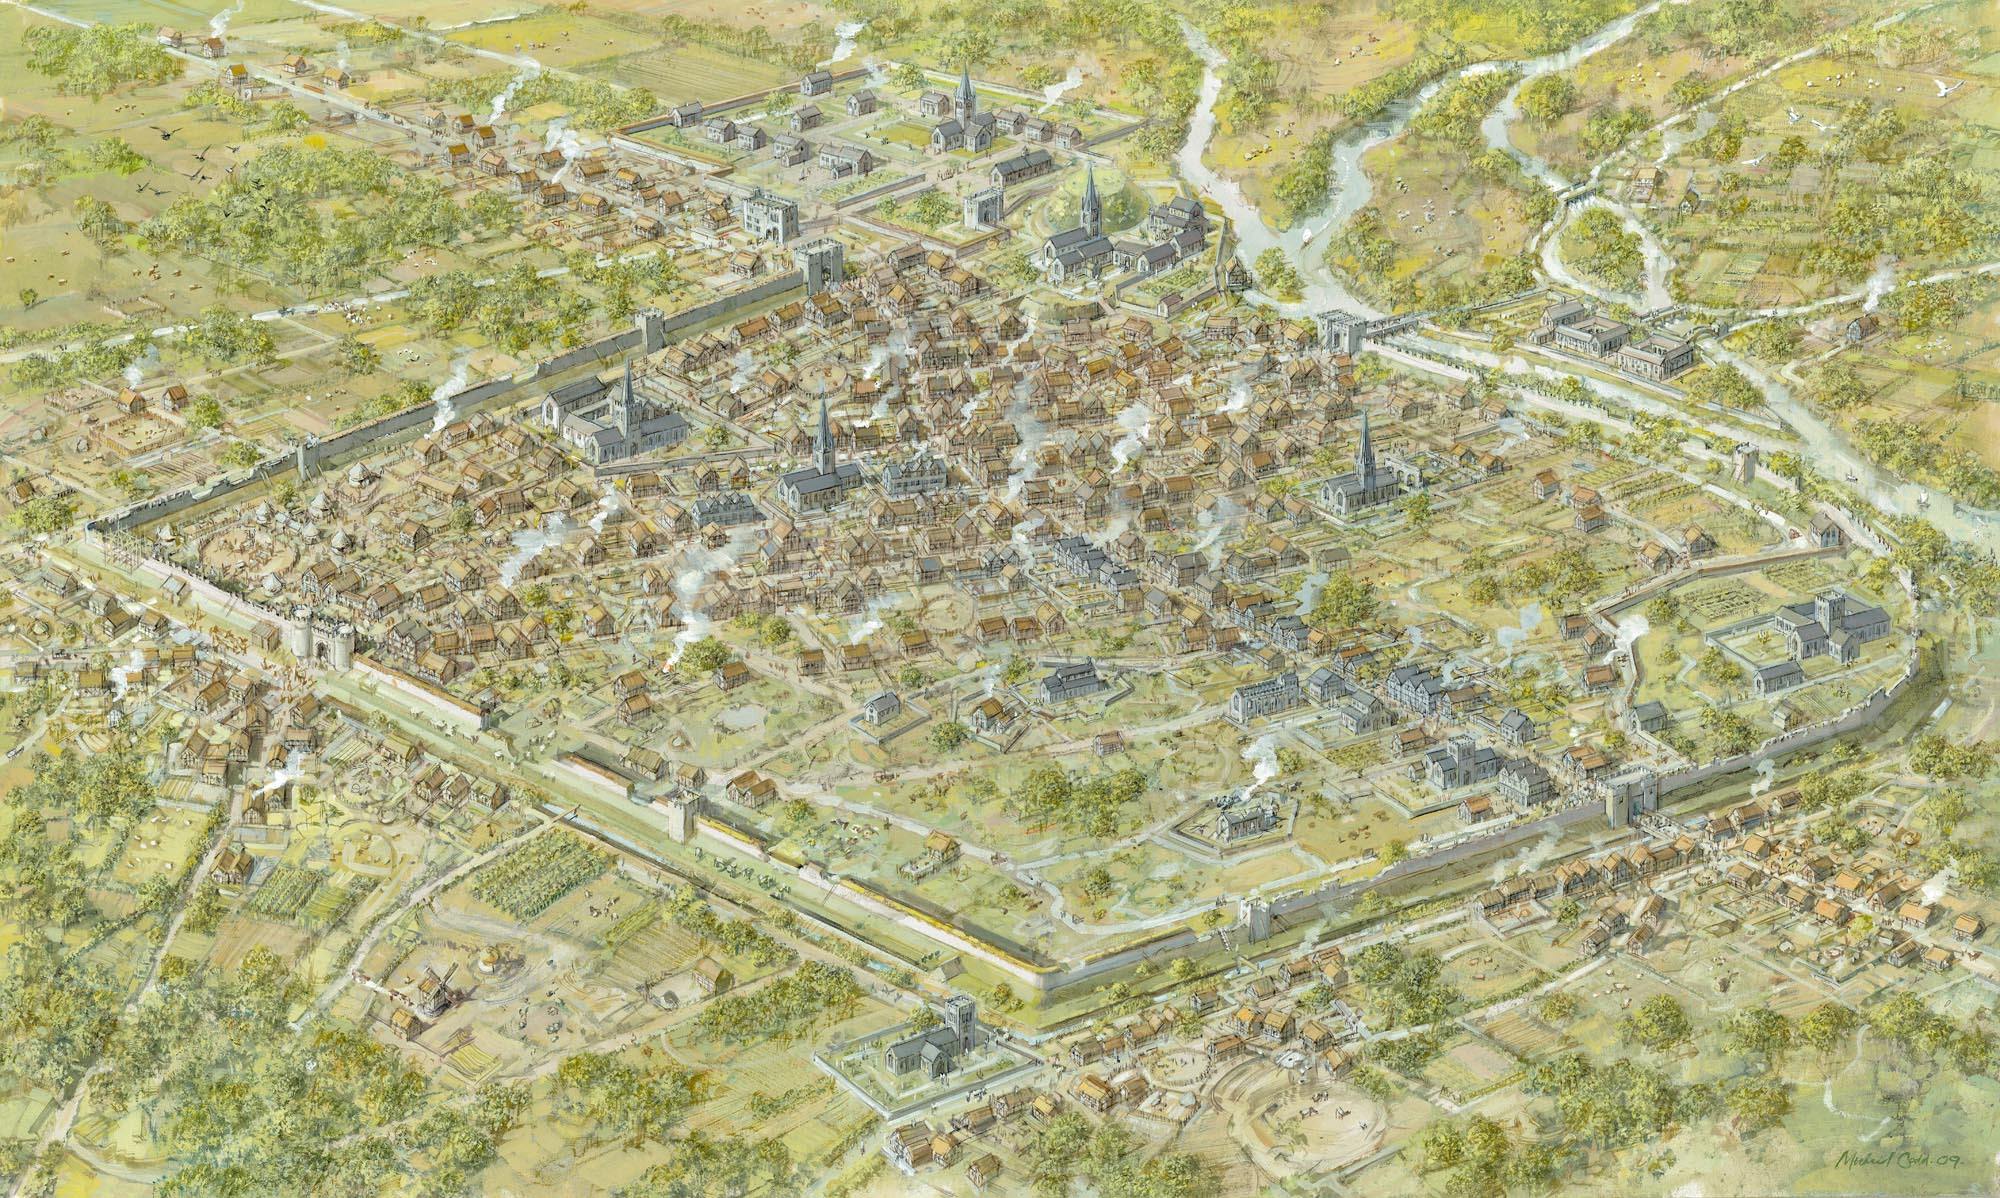 An artist impression of how Leicester looked around 1450 -